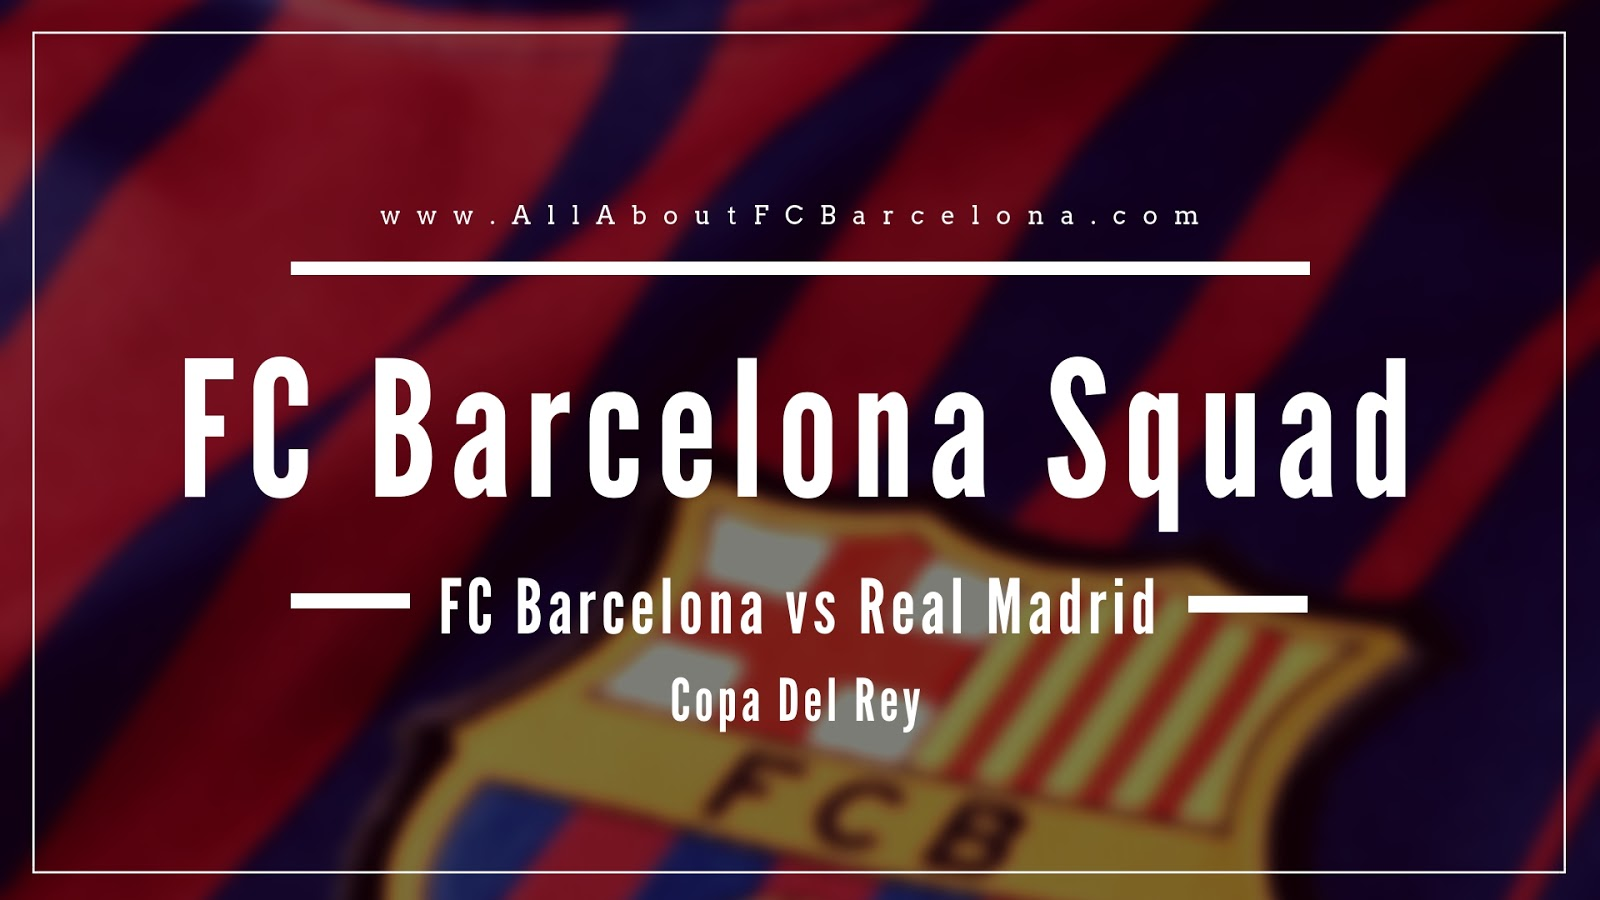 FC Barcelona announces Squad against Real Madrid for Copa First Leg #BarcaMadrid #FCBarcelona #Clasico